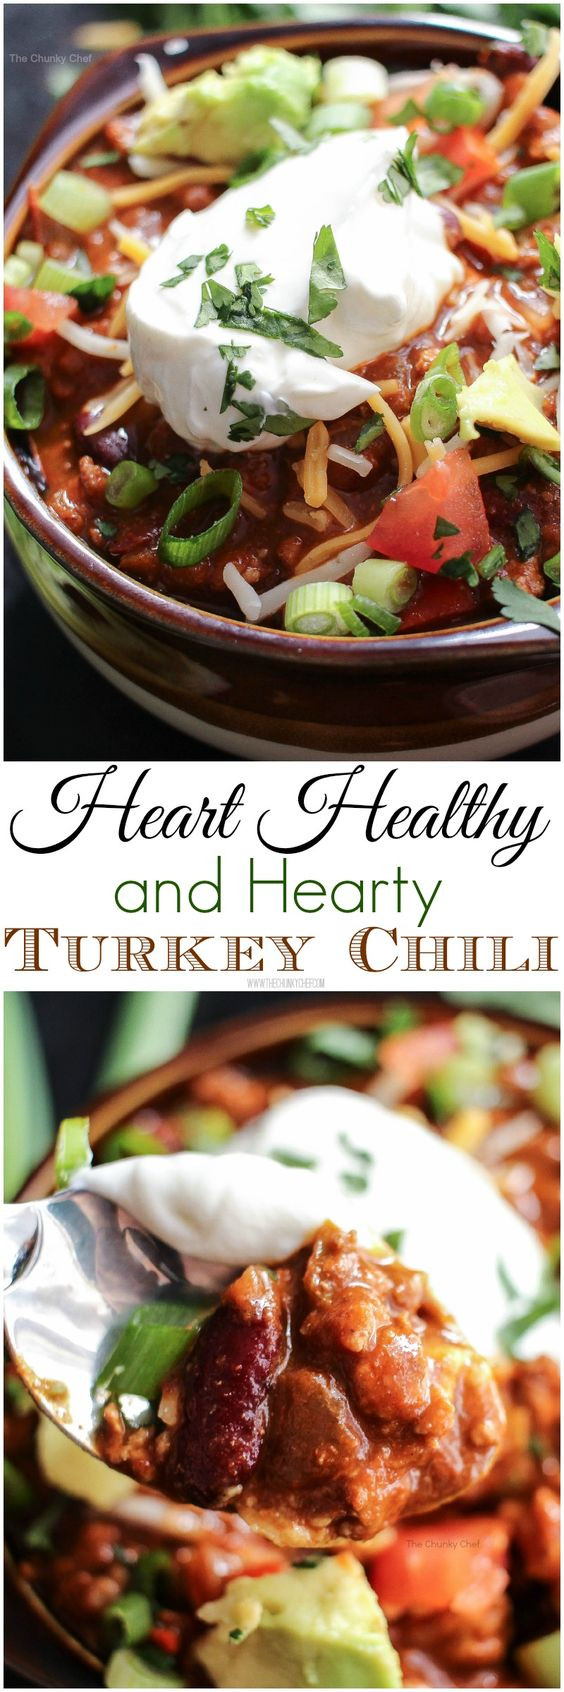 Heart Healthy Winter Recipes  28 Healthy Winter Recipes to Start Your New Year s f Right